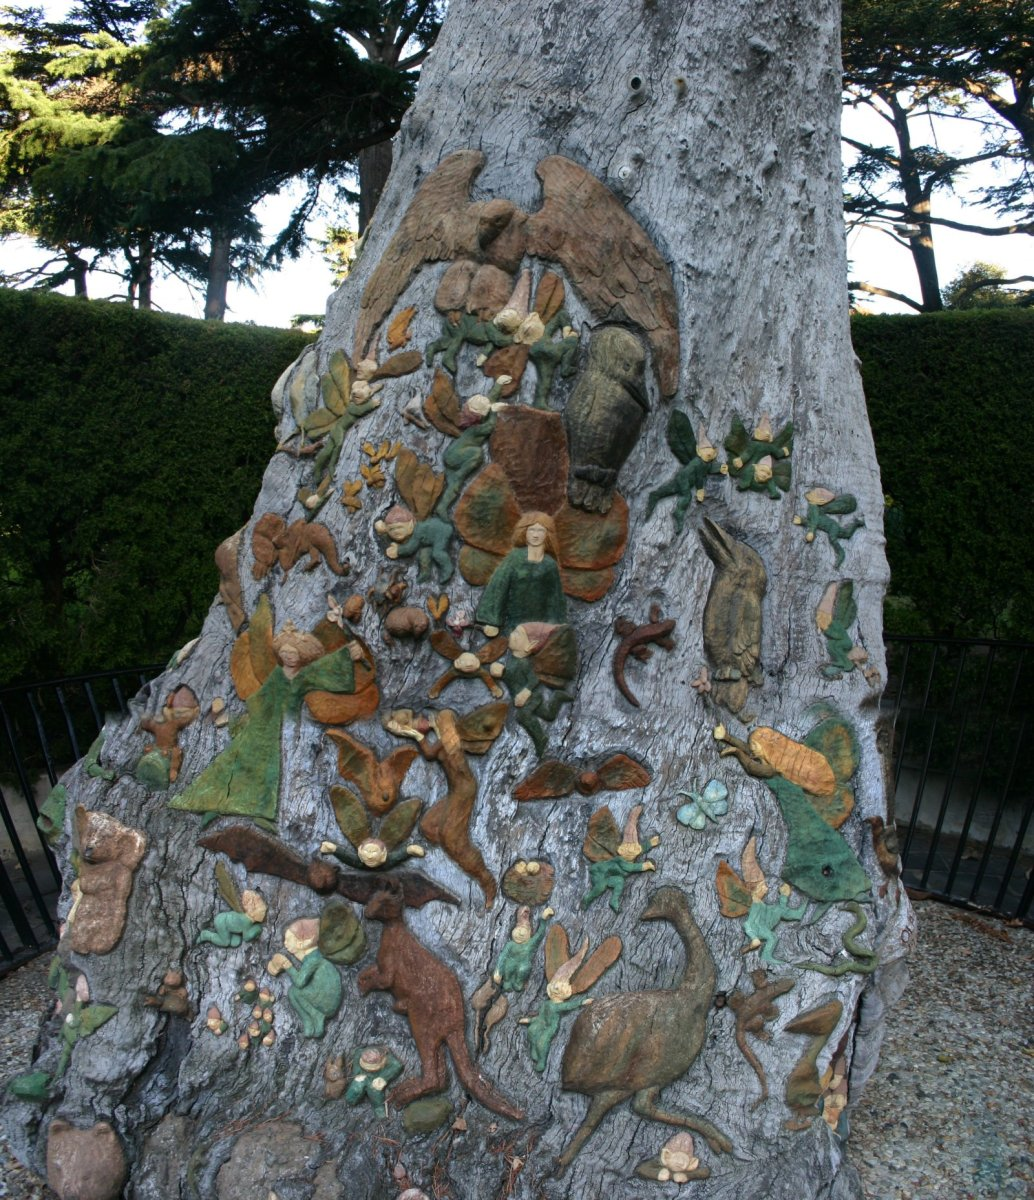 The Fairies tree in the Fitzroy Gardens, Melbourne. Sculptored by Ola Cohn 1931-1934. Photo by Wiki Media user Ausxan